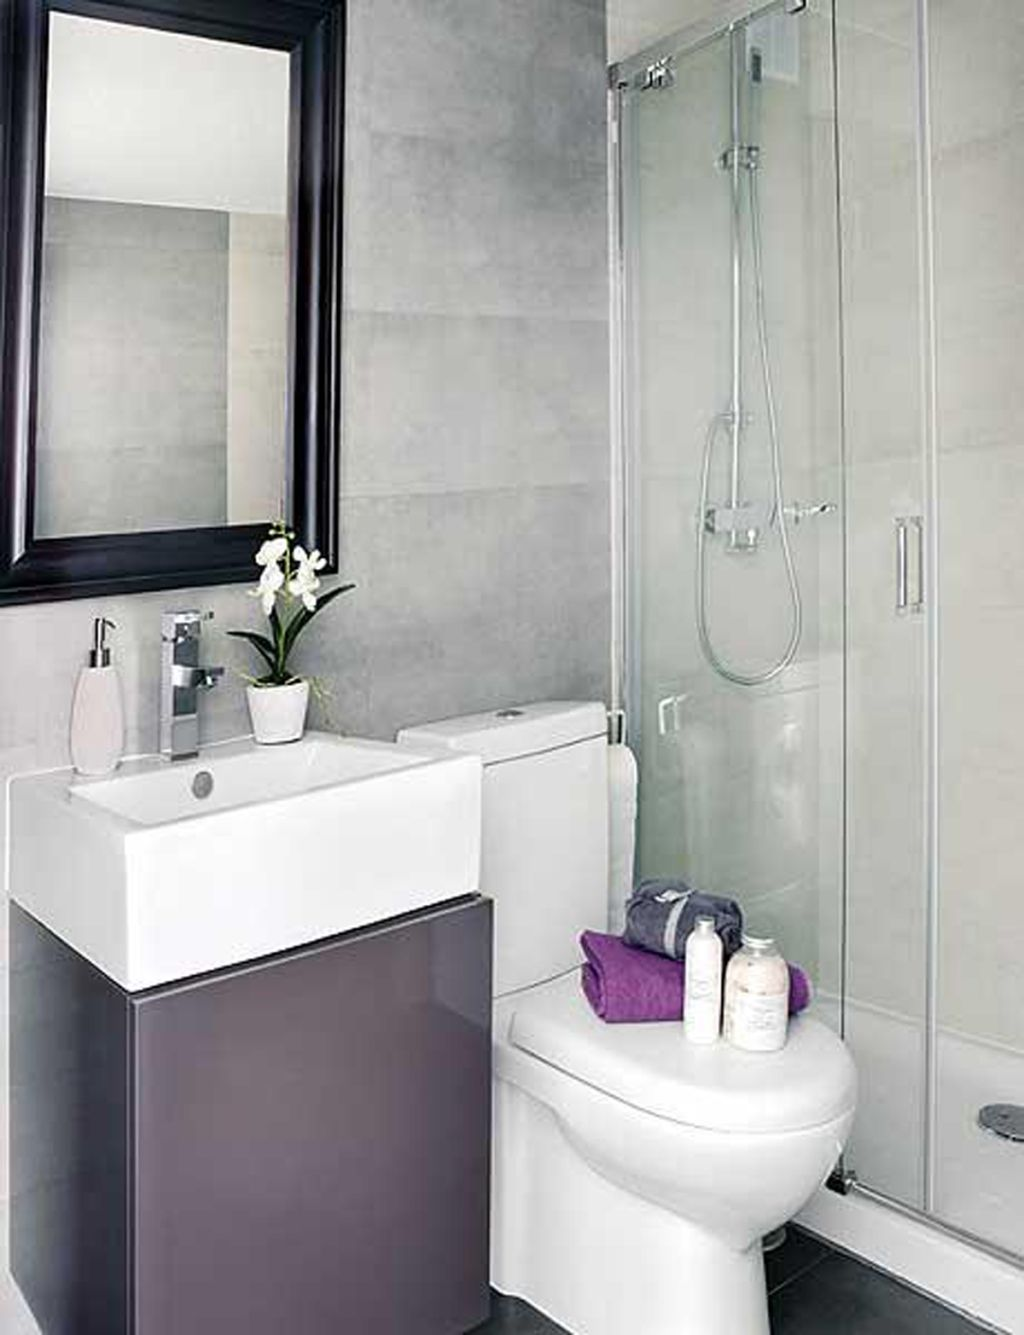 Bathroom Ideas Houzz Simple Small Bathroom Design In Malaysia  Httpwwwhouzzclubsmall Decorating Design